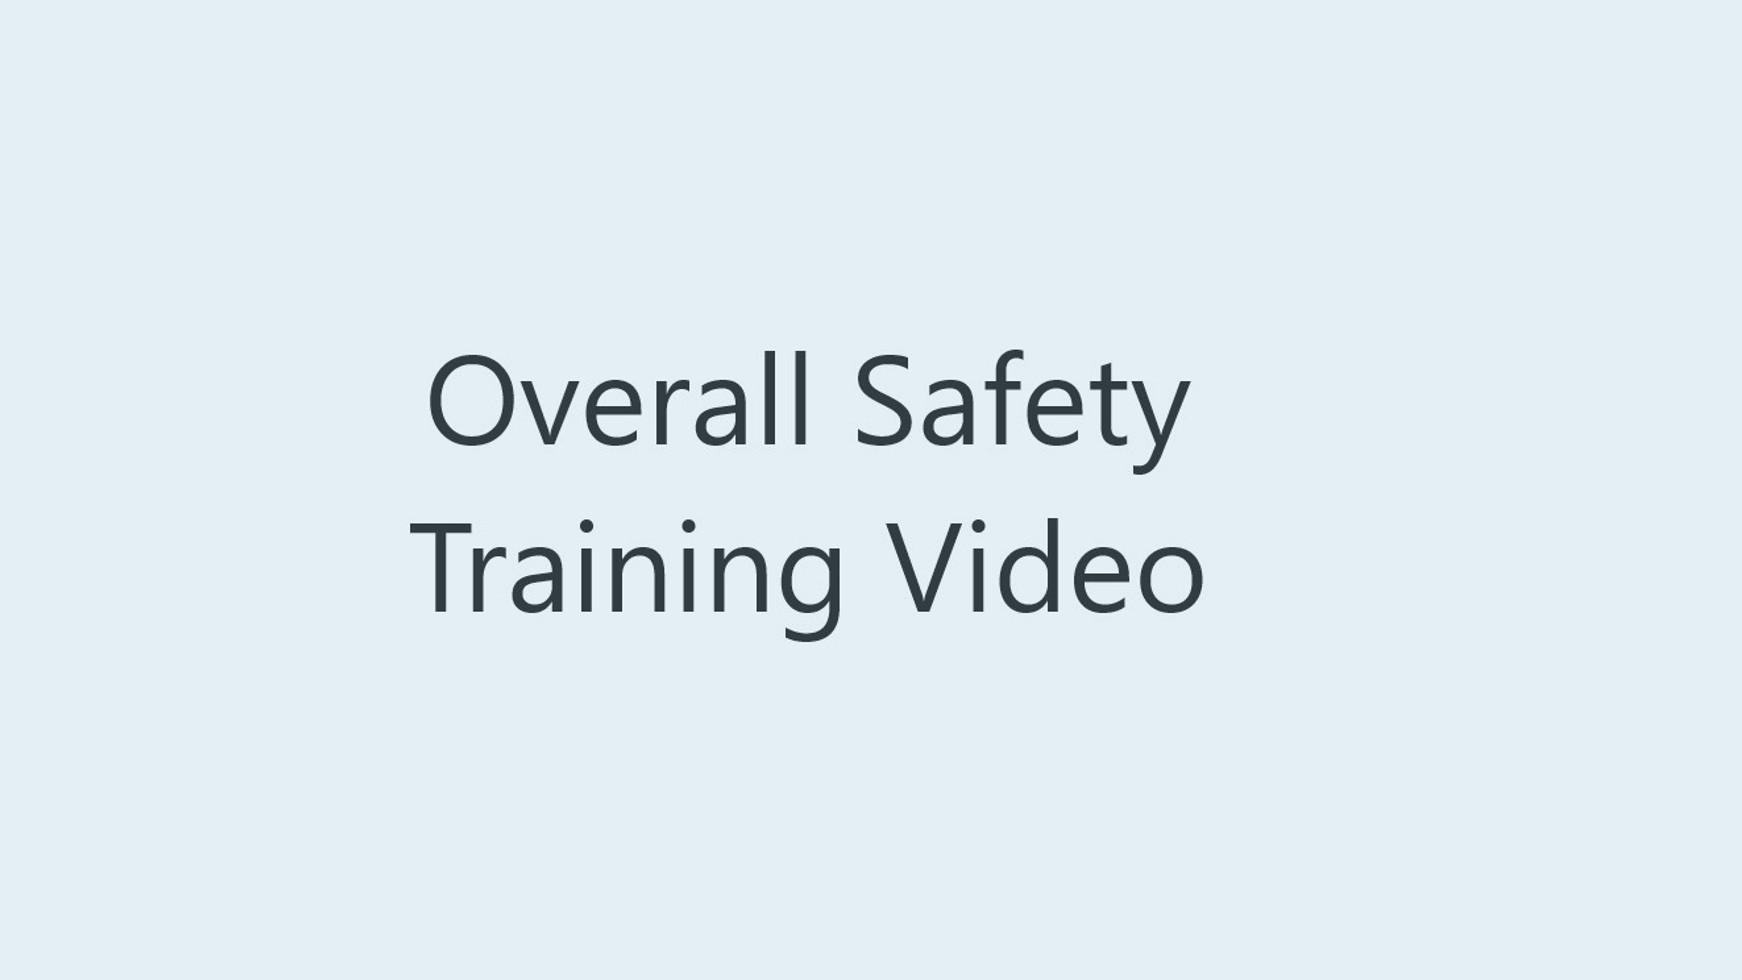 Overall Safety Training Video